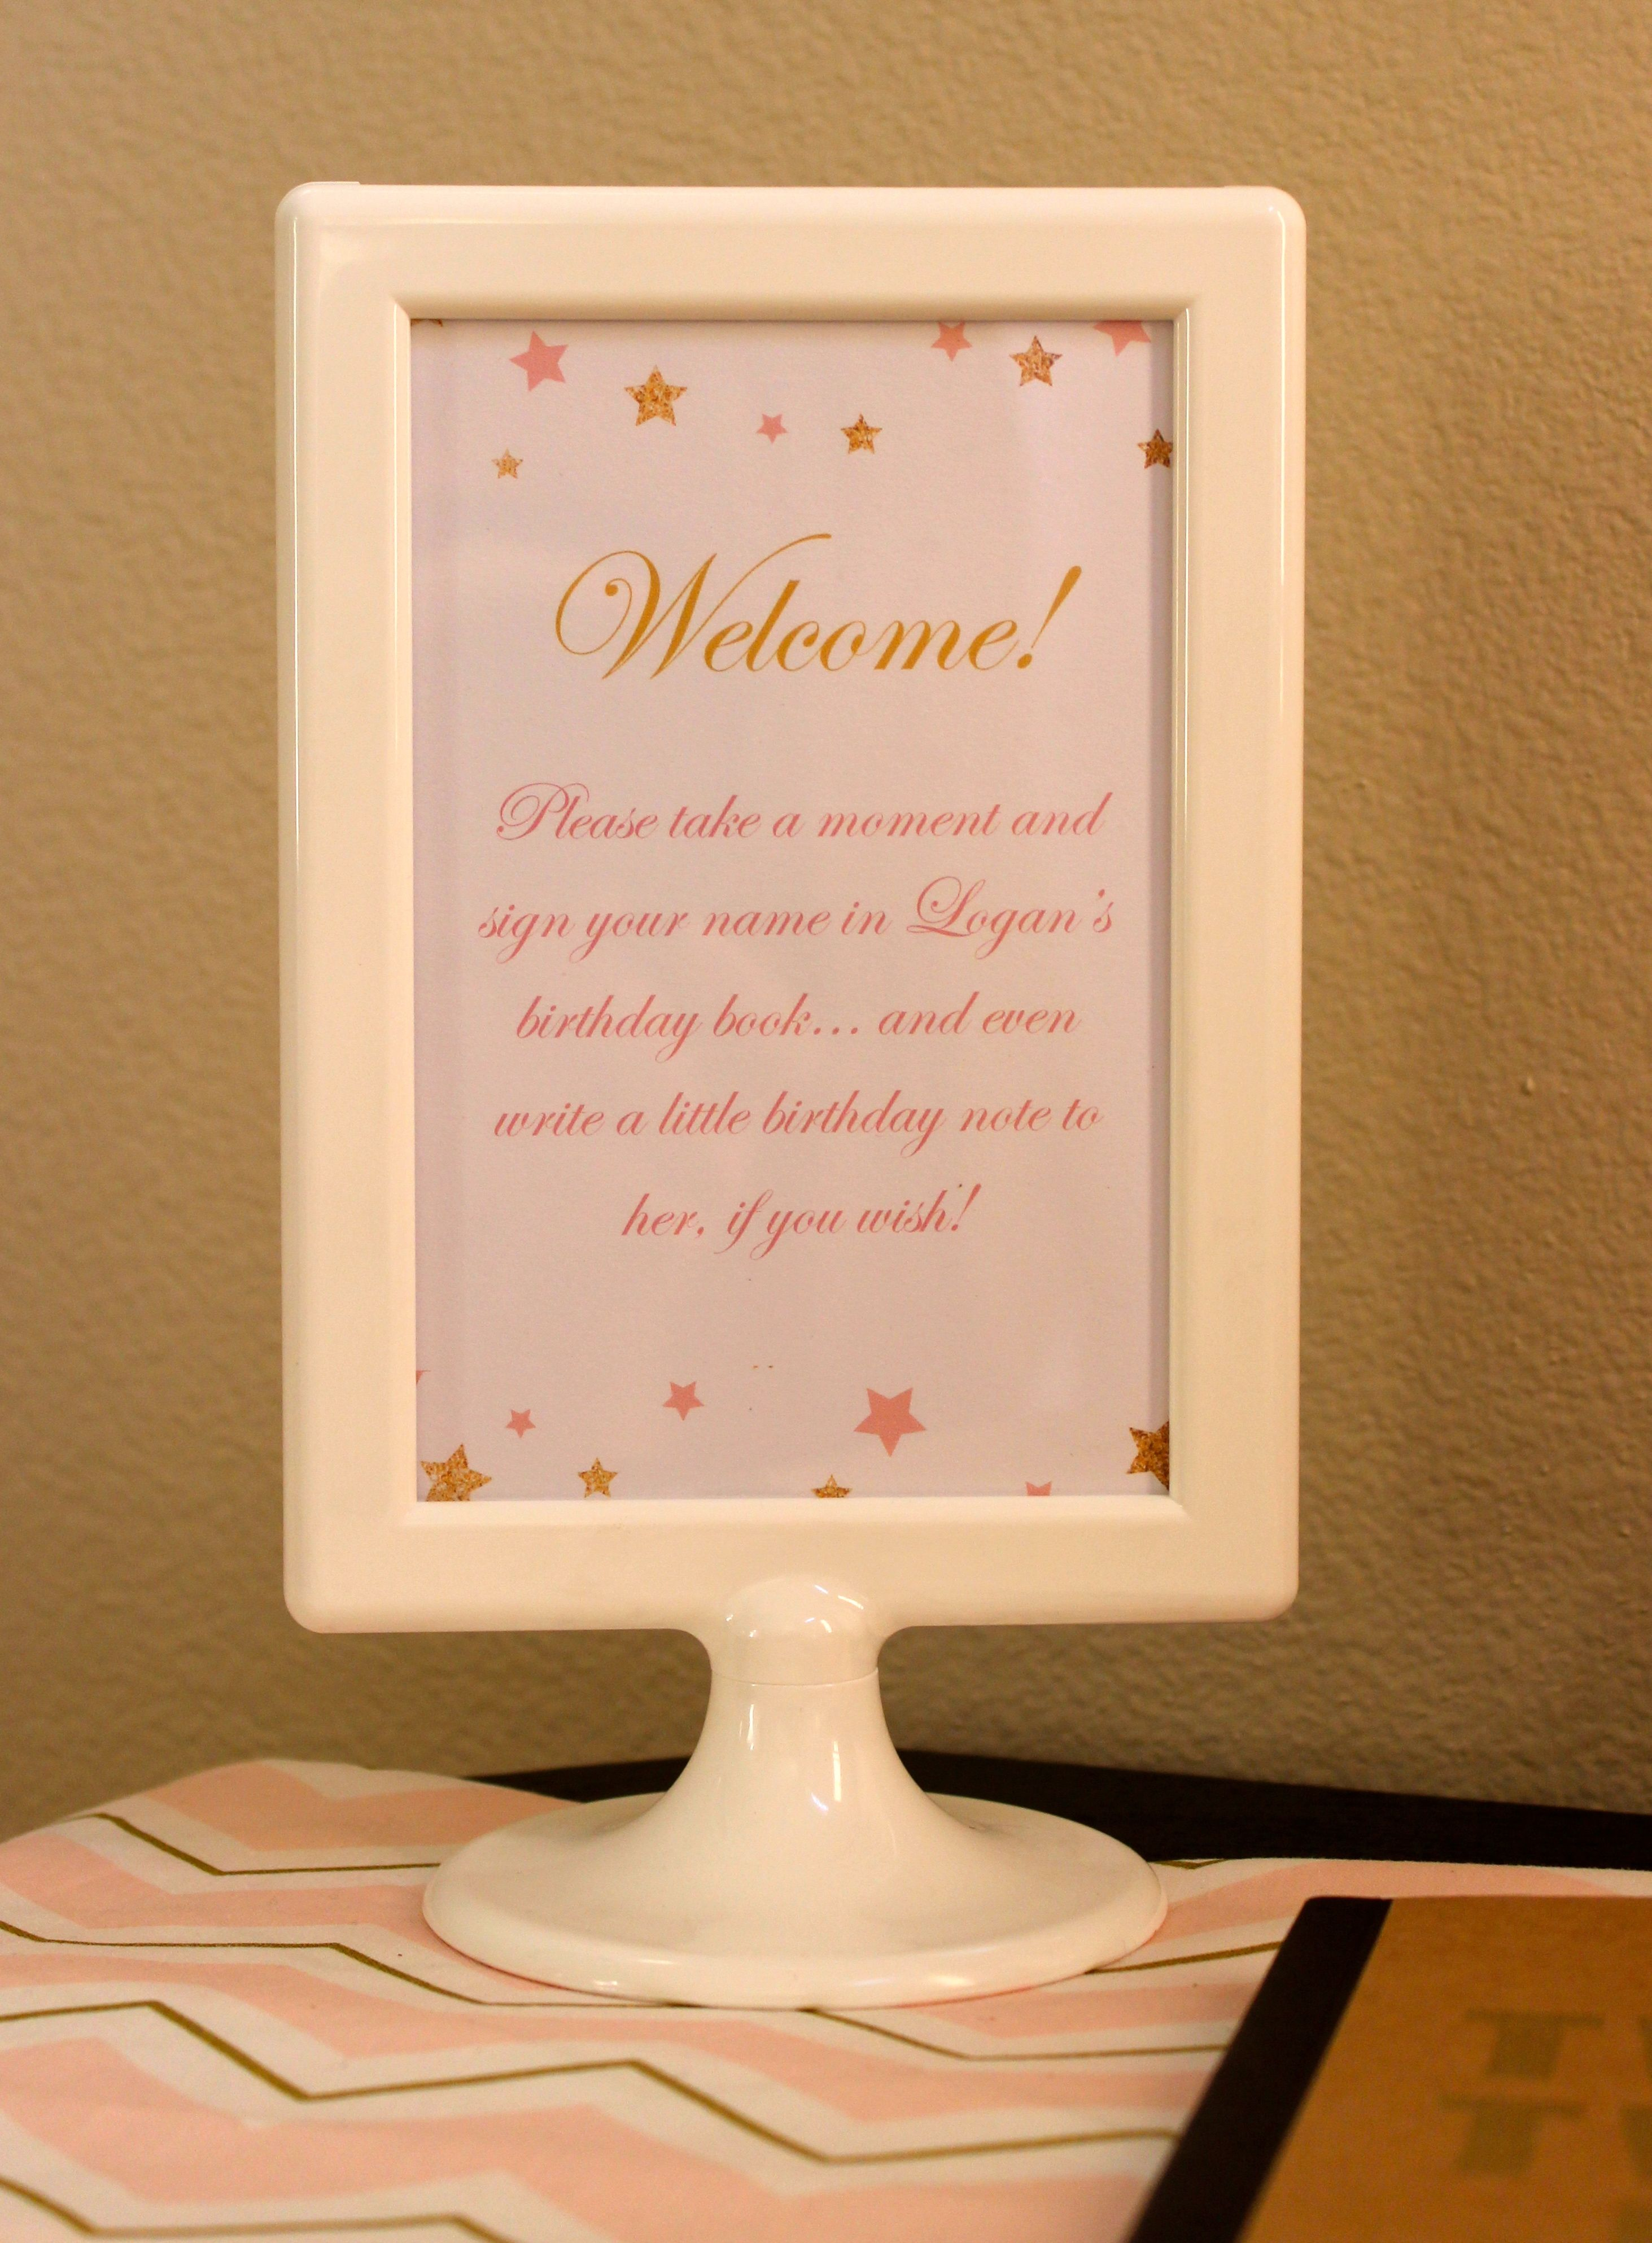 twinkle twinkle little star, party, first birthday, guest book, welcome message, pink and gold